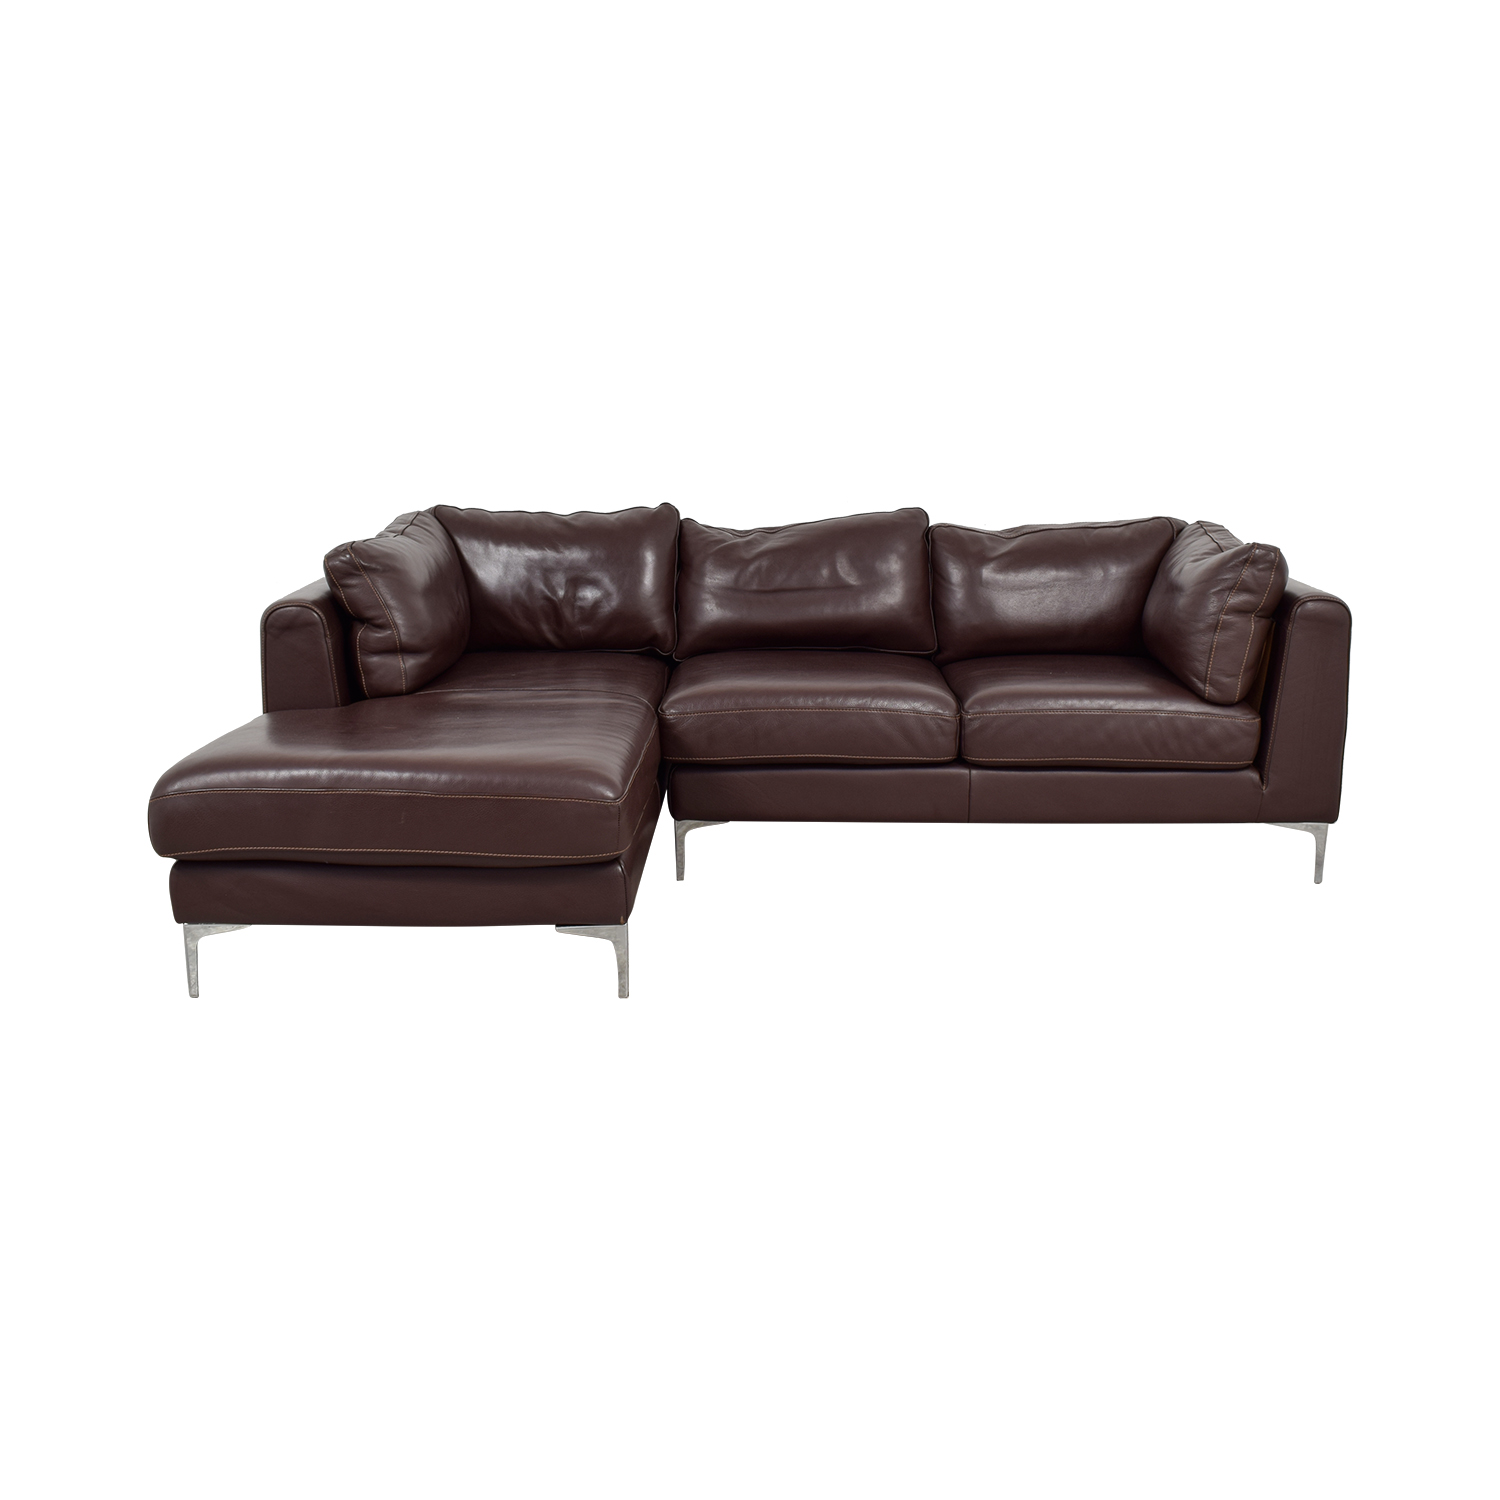 Brown Sheep Skin Leather Chaise Sectional